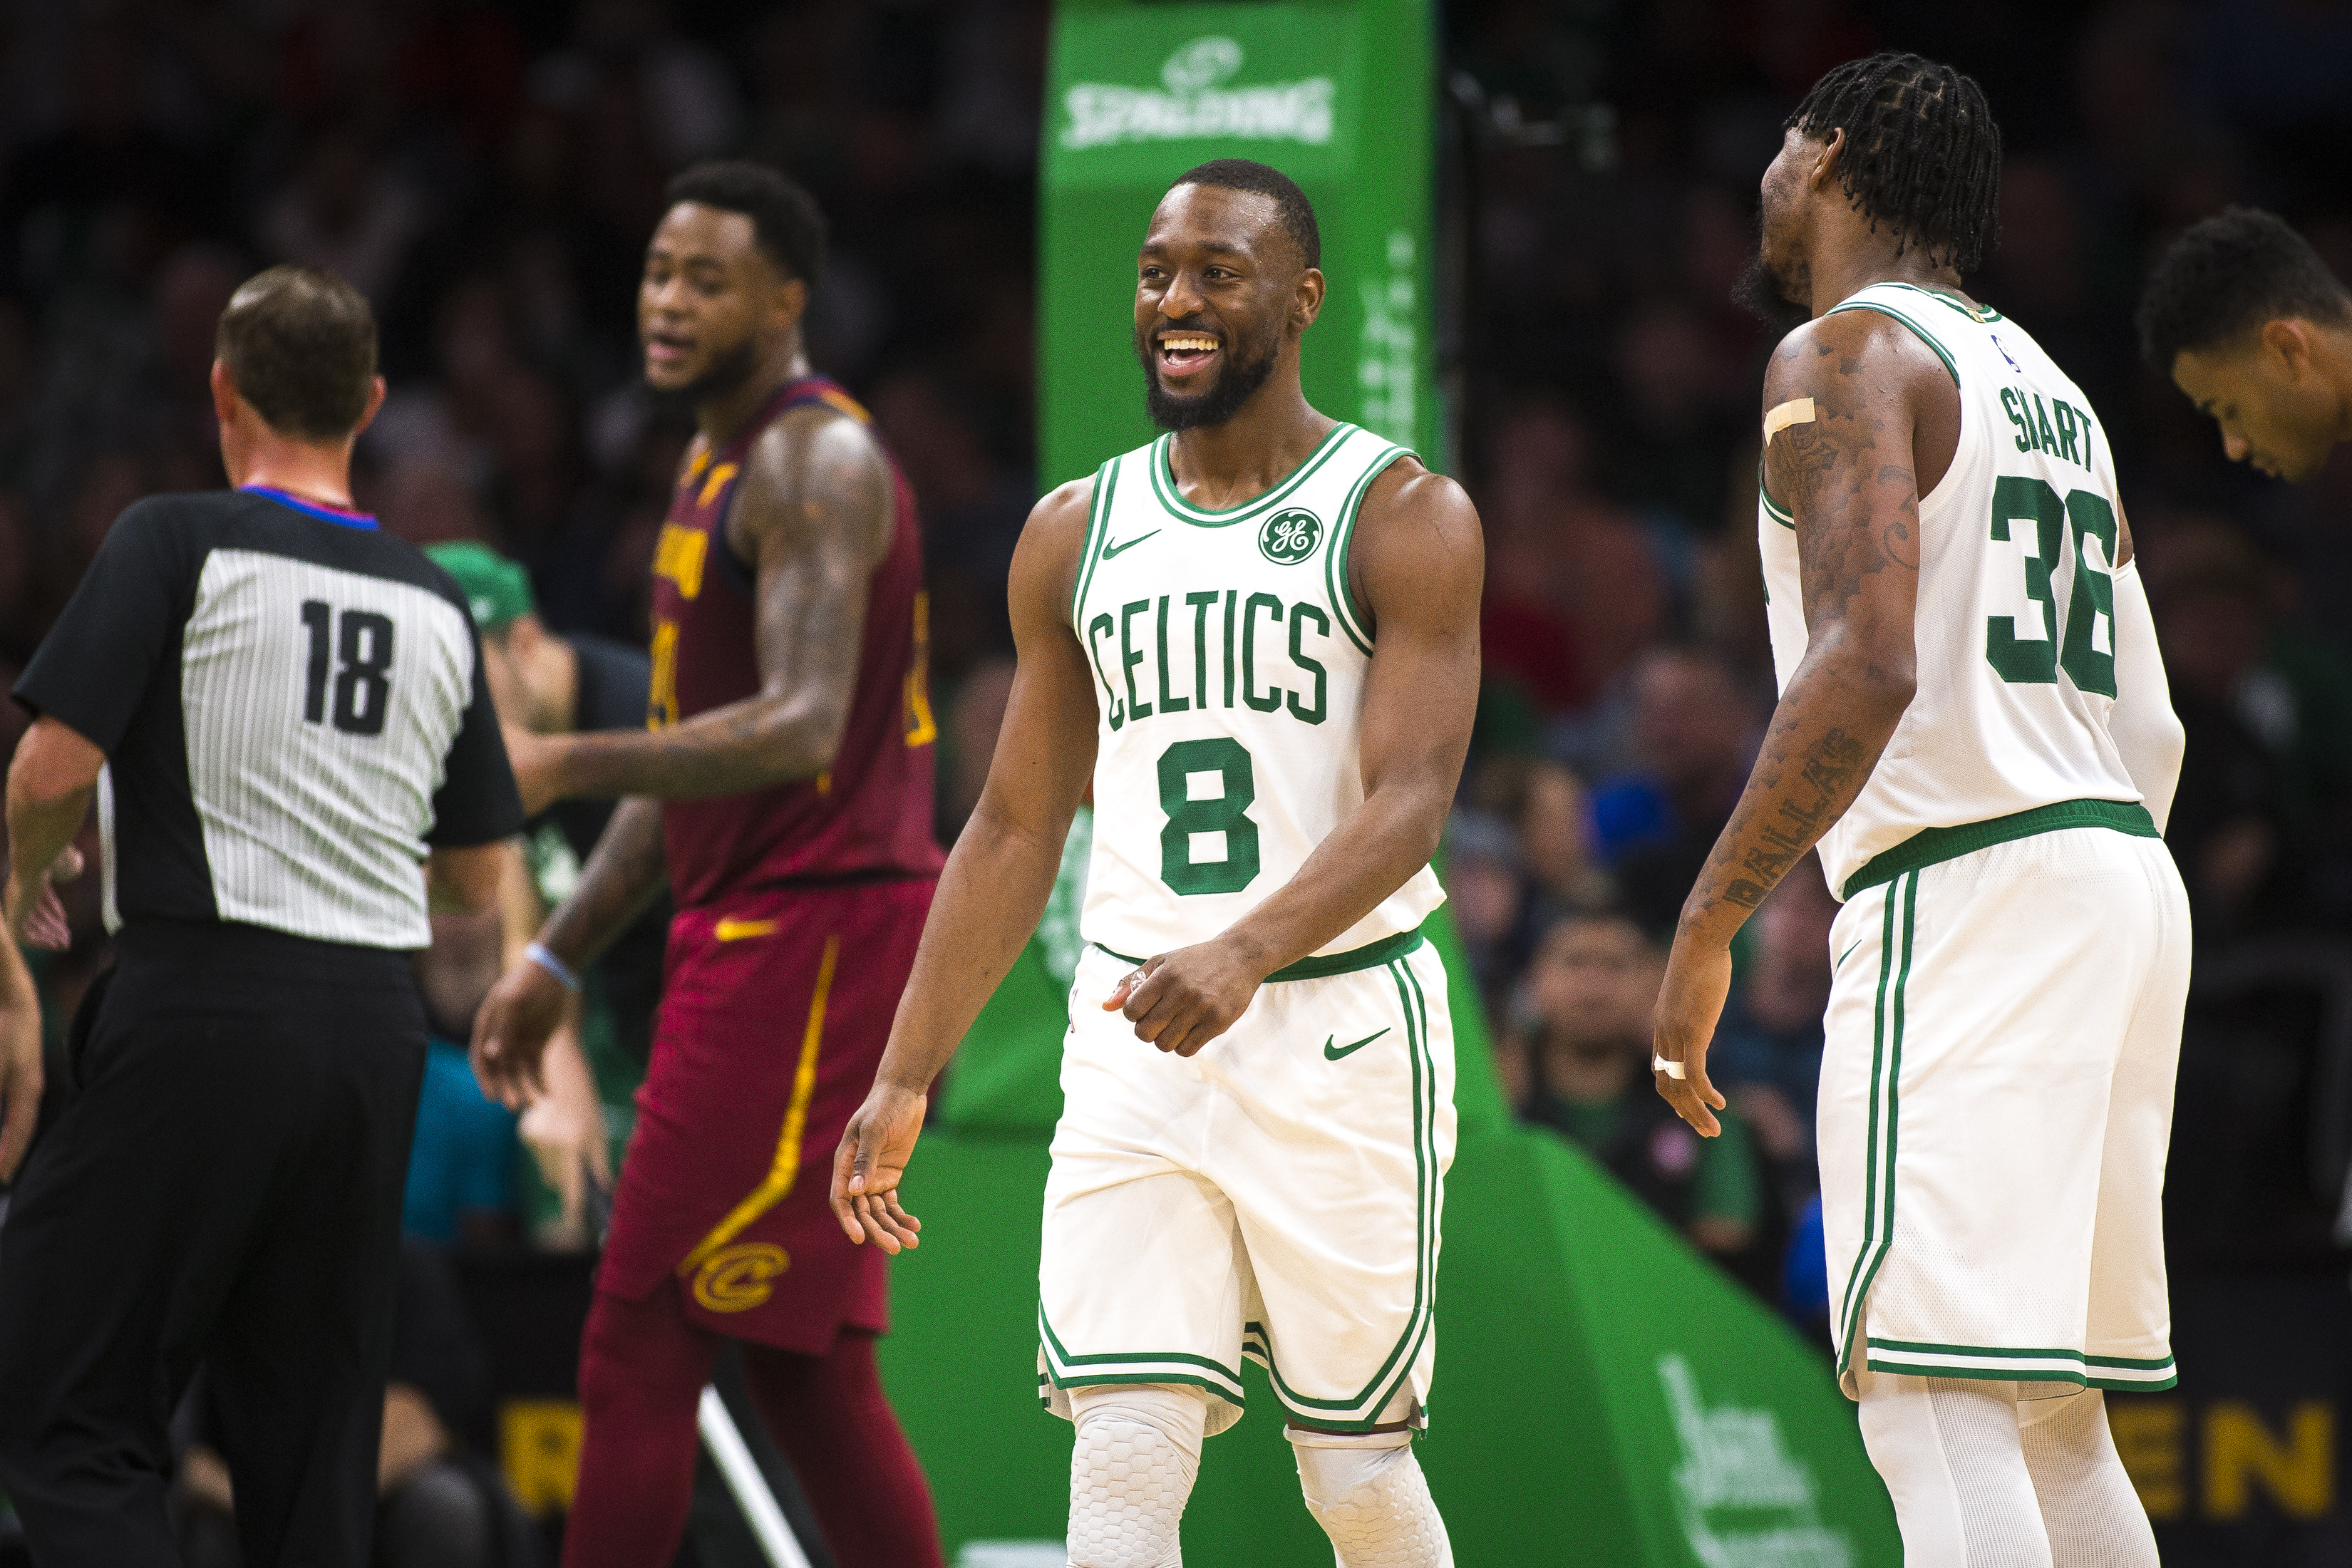 For this year's Celtics, optimism may be trumping reality